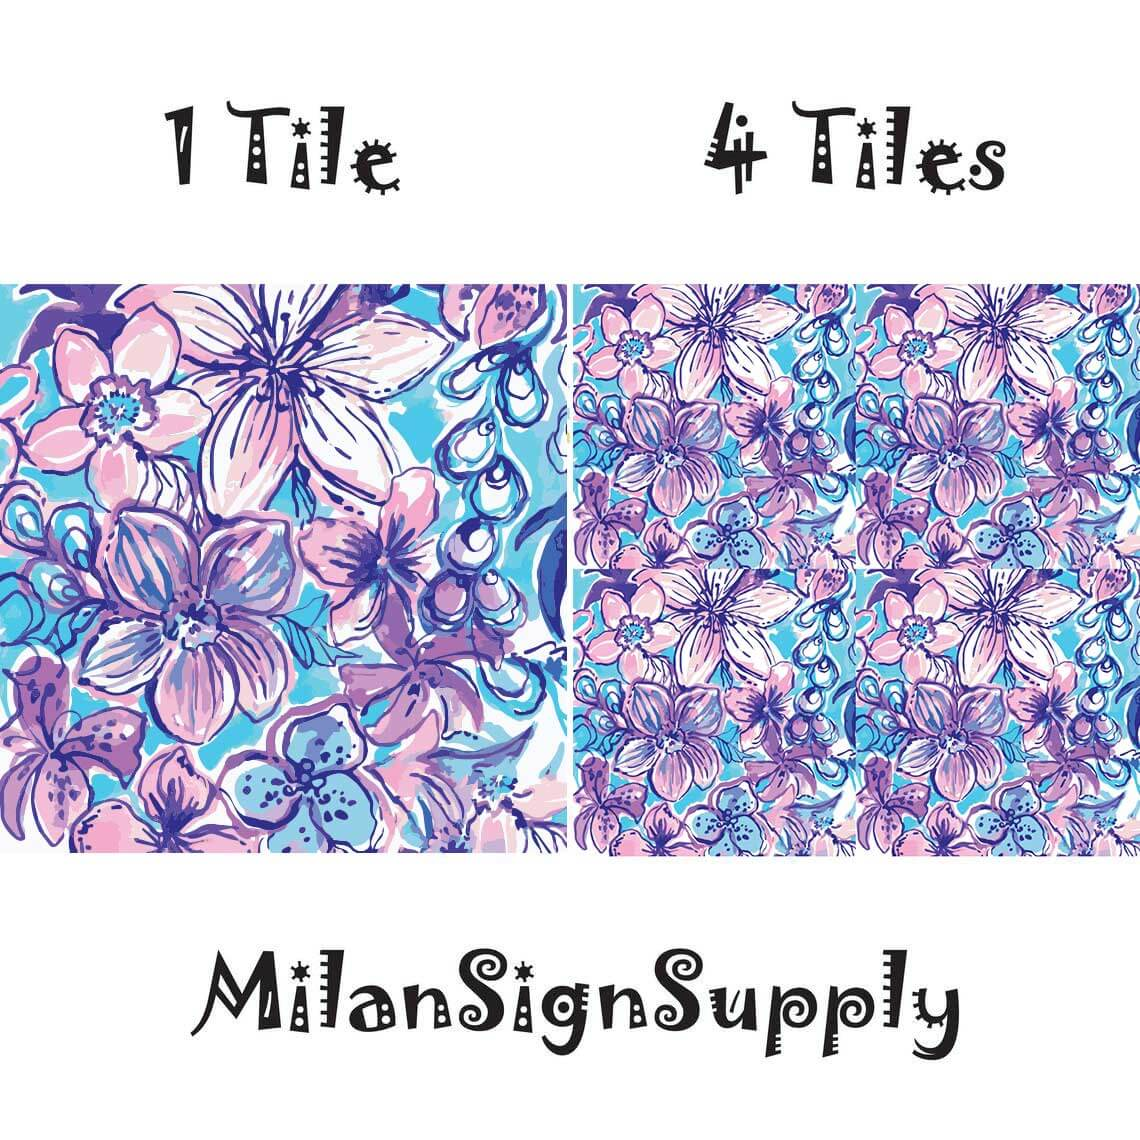 Print style - 1 or 4 tiles